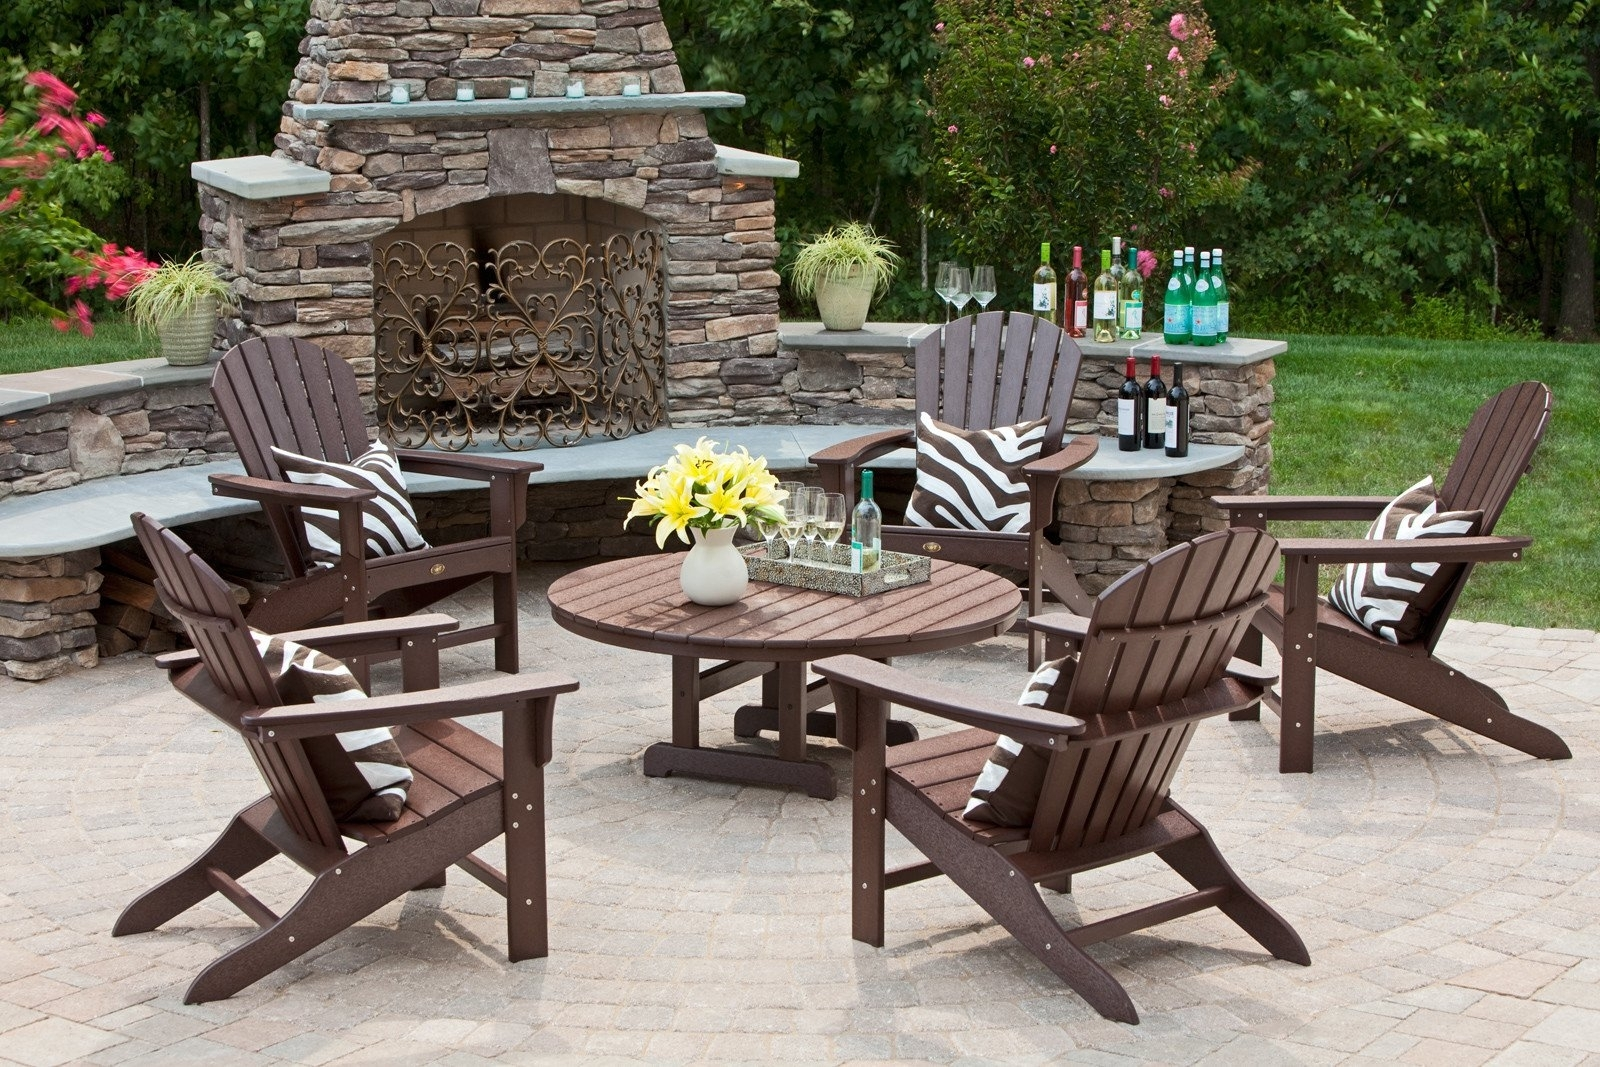 Newest Conversation Sets Hampton Bay Patio Chat Set Wood Patio Furniture With Wood Patio Furniture Conversation Sets (View 10 of 15)